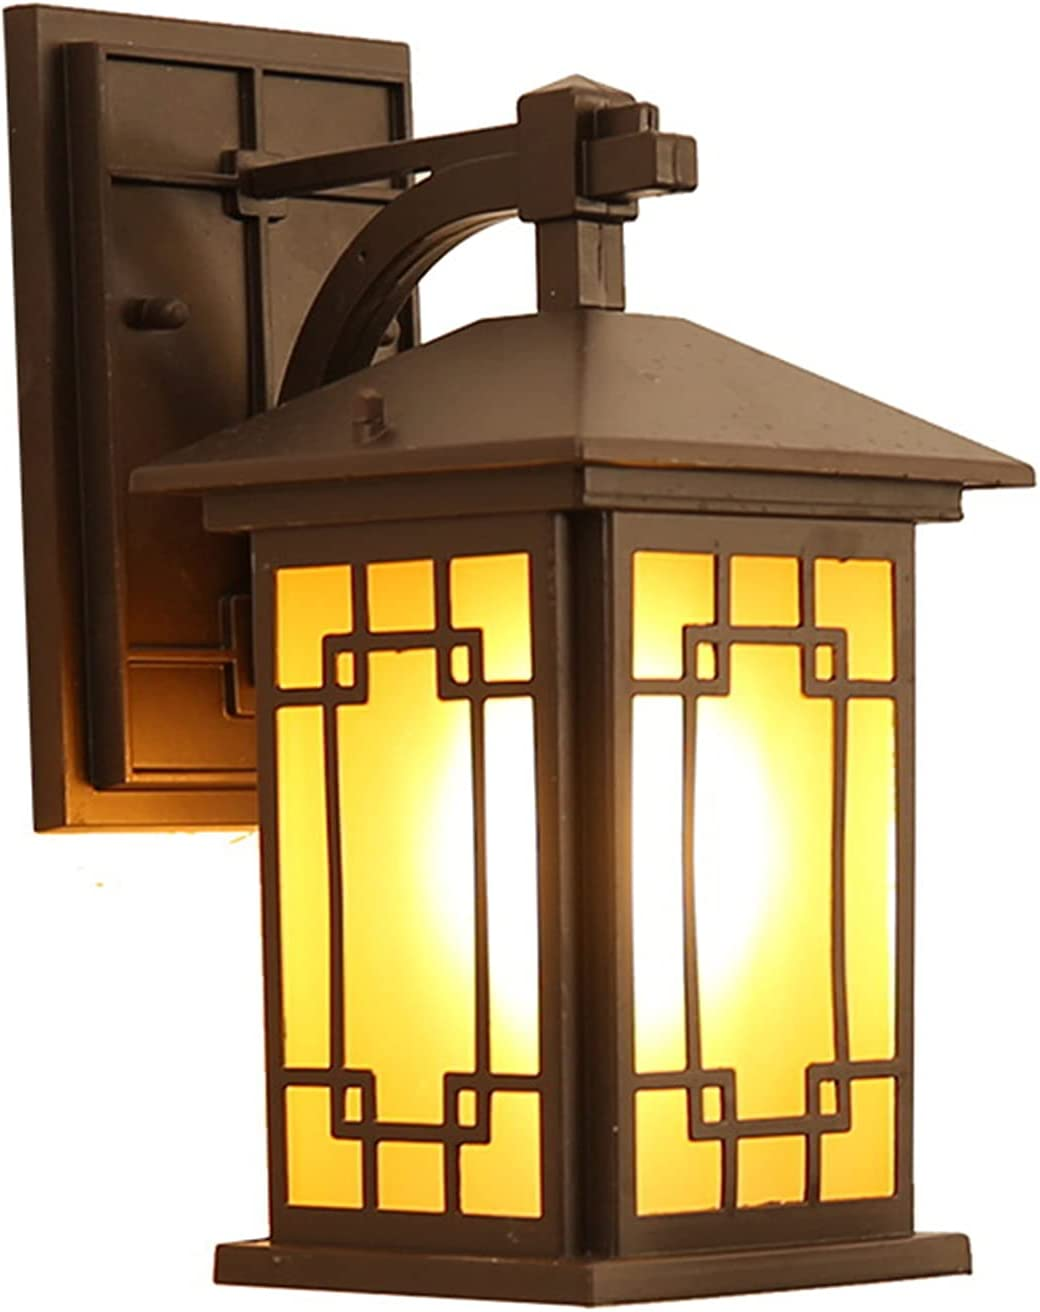 Tanktoyd Retro Outdoor Daily bargain sale Wall Lamp Waterproof Chinese Fitting Tampa Mall